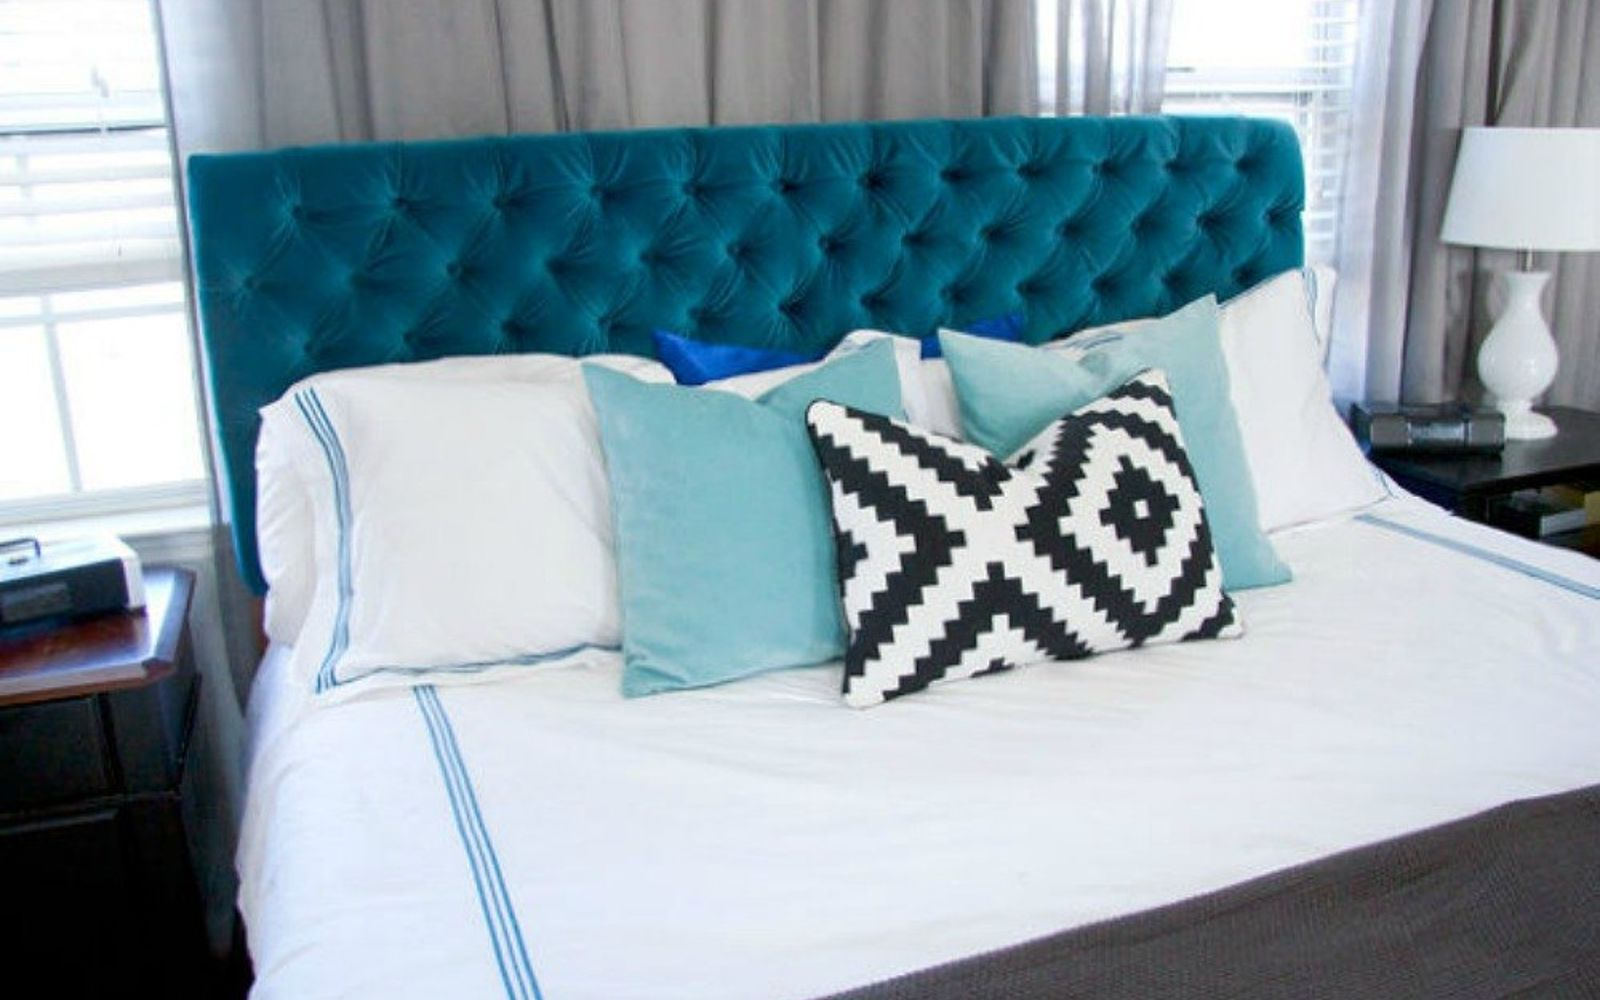 s these are the diy headboard ideas you ve been dreaming of, This velvety luxurious dreamboat